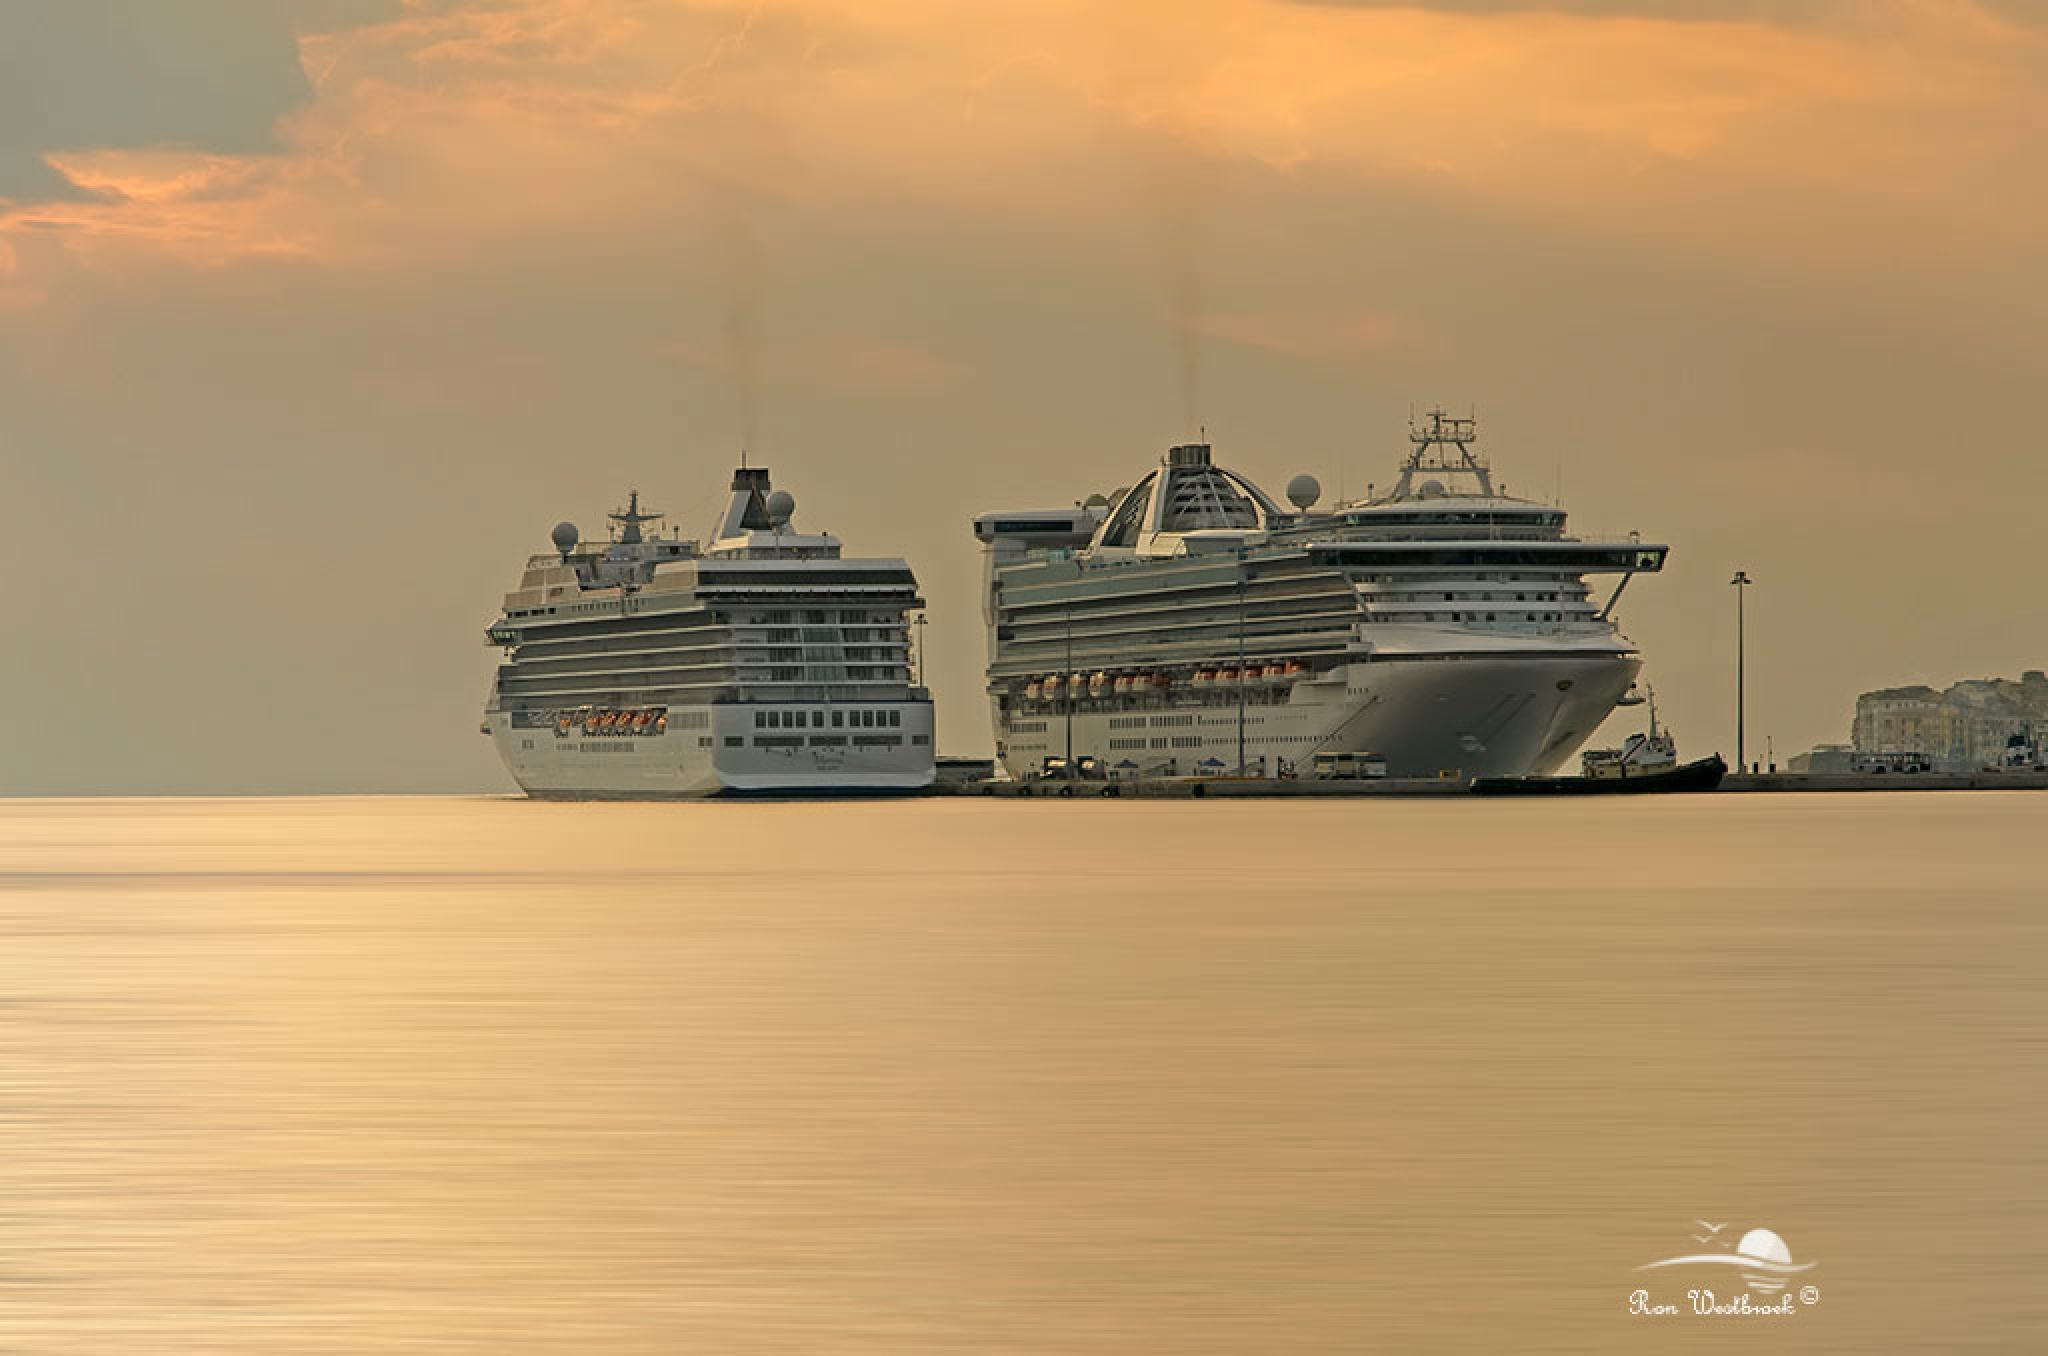 Cruise ships by Ron Westbroek